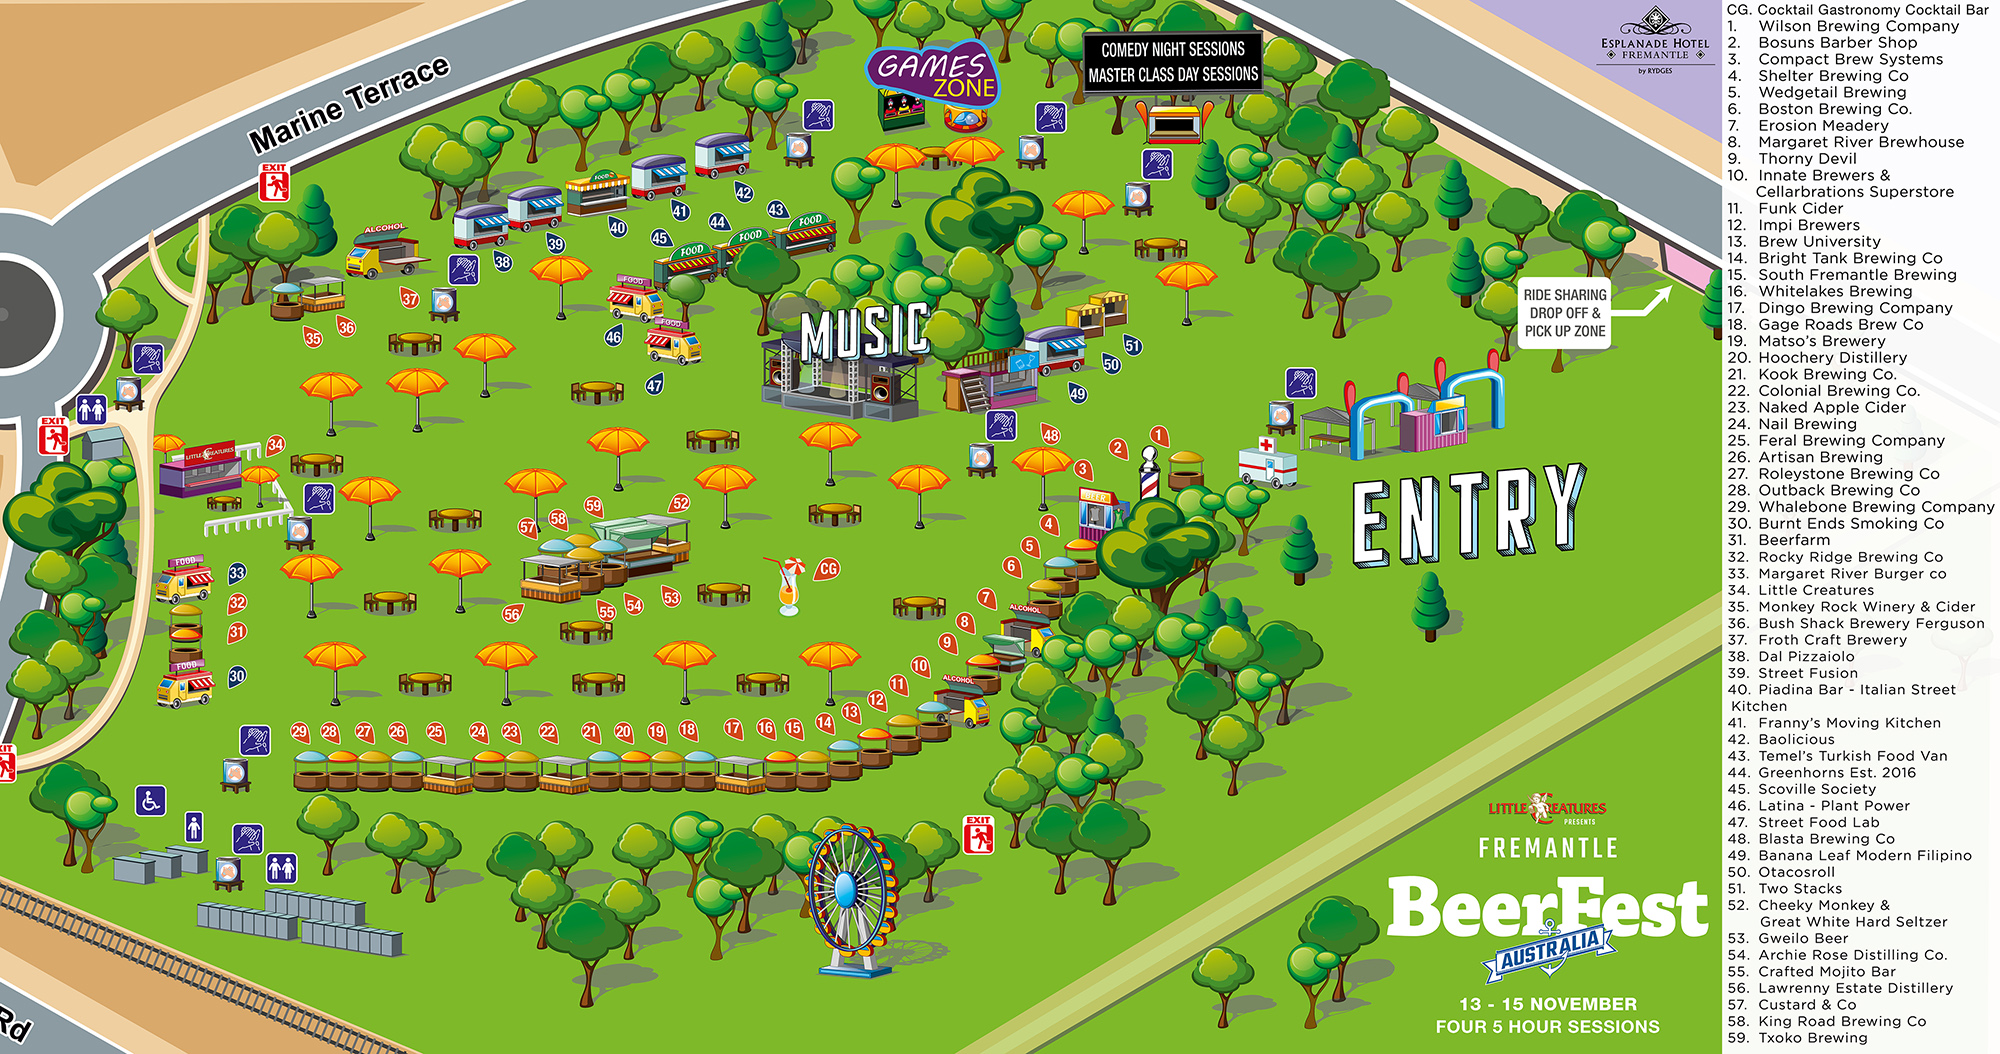 Festival Map for Fremantle BeerFest 2020